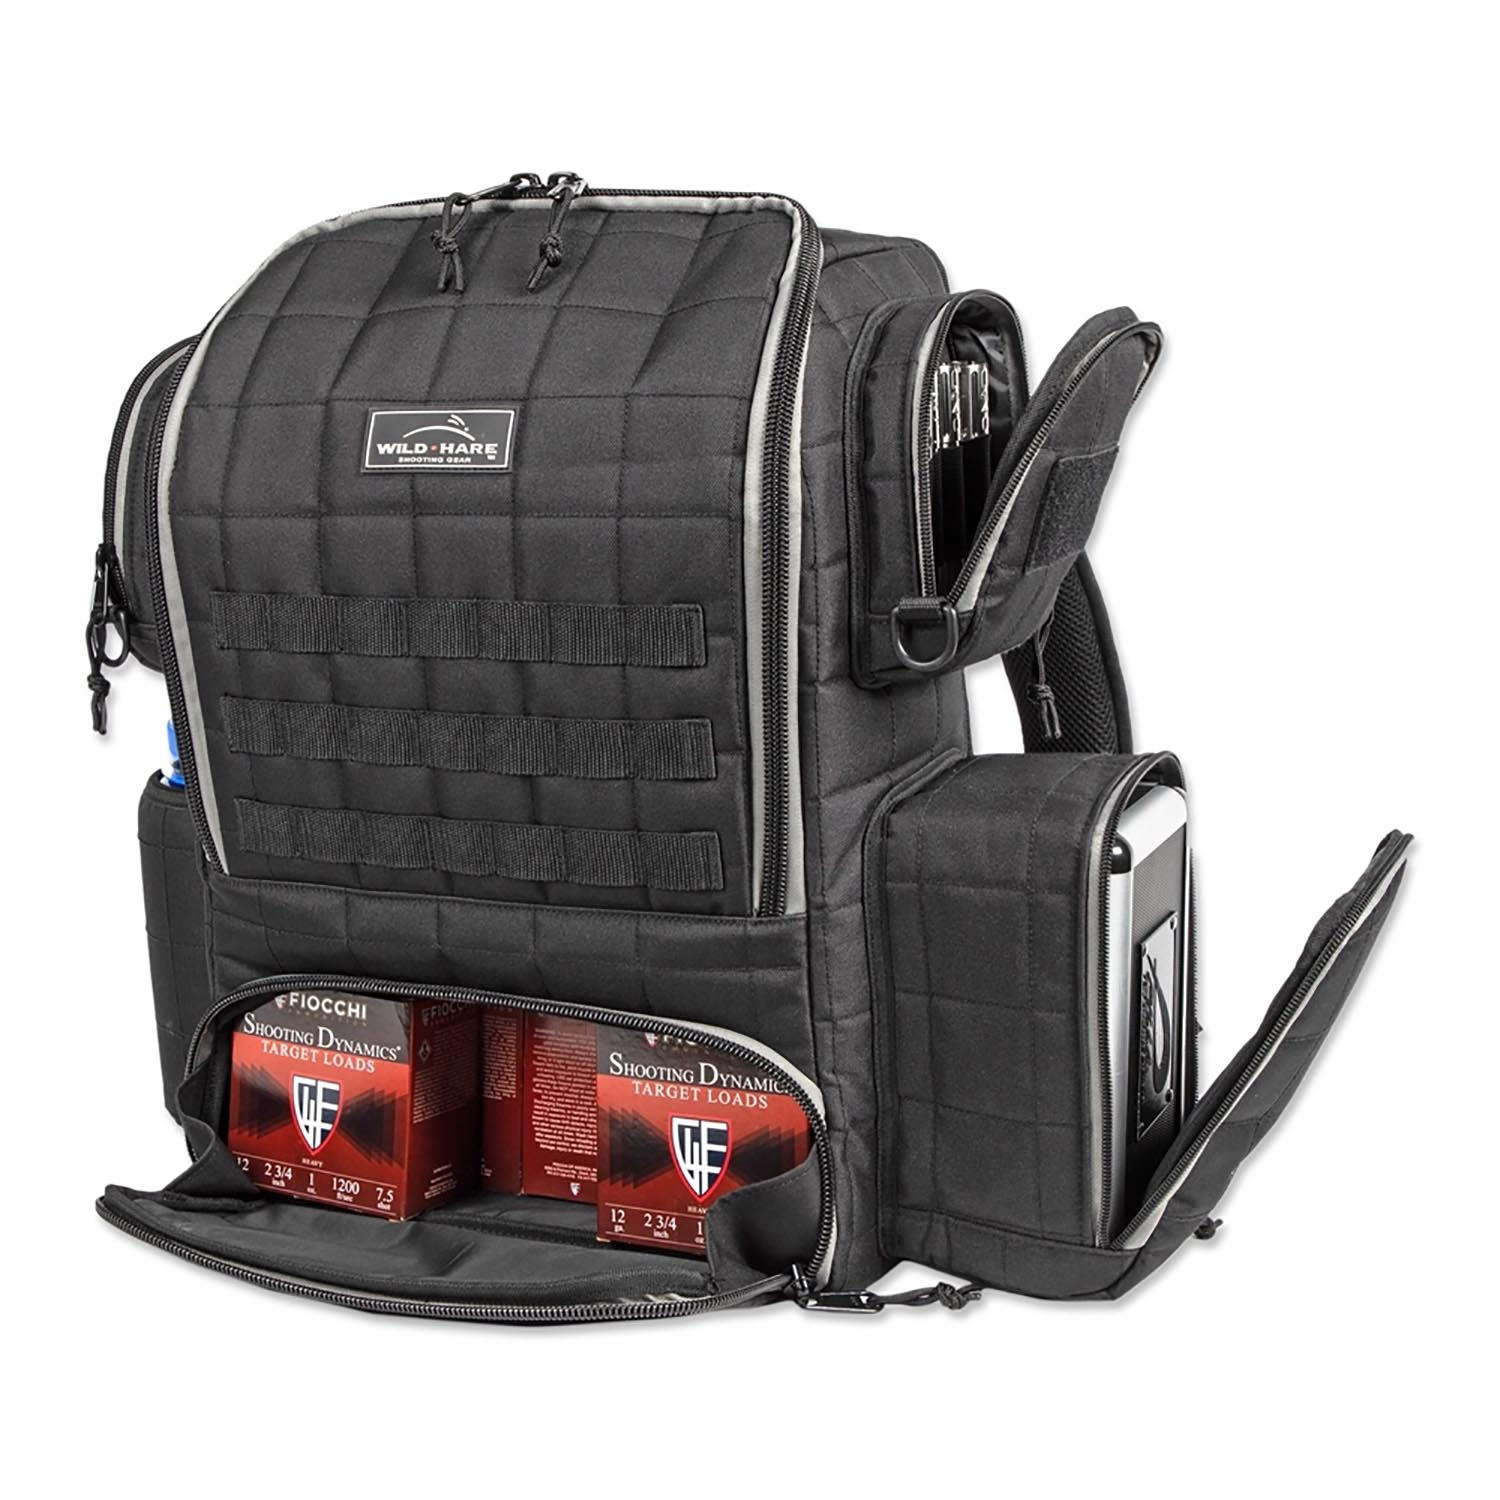 Wild Hare Deluxe Competition Range Backpack -ammo carrier